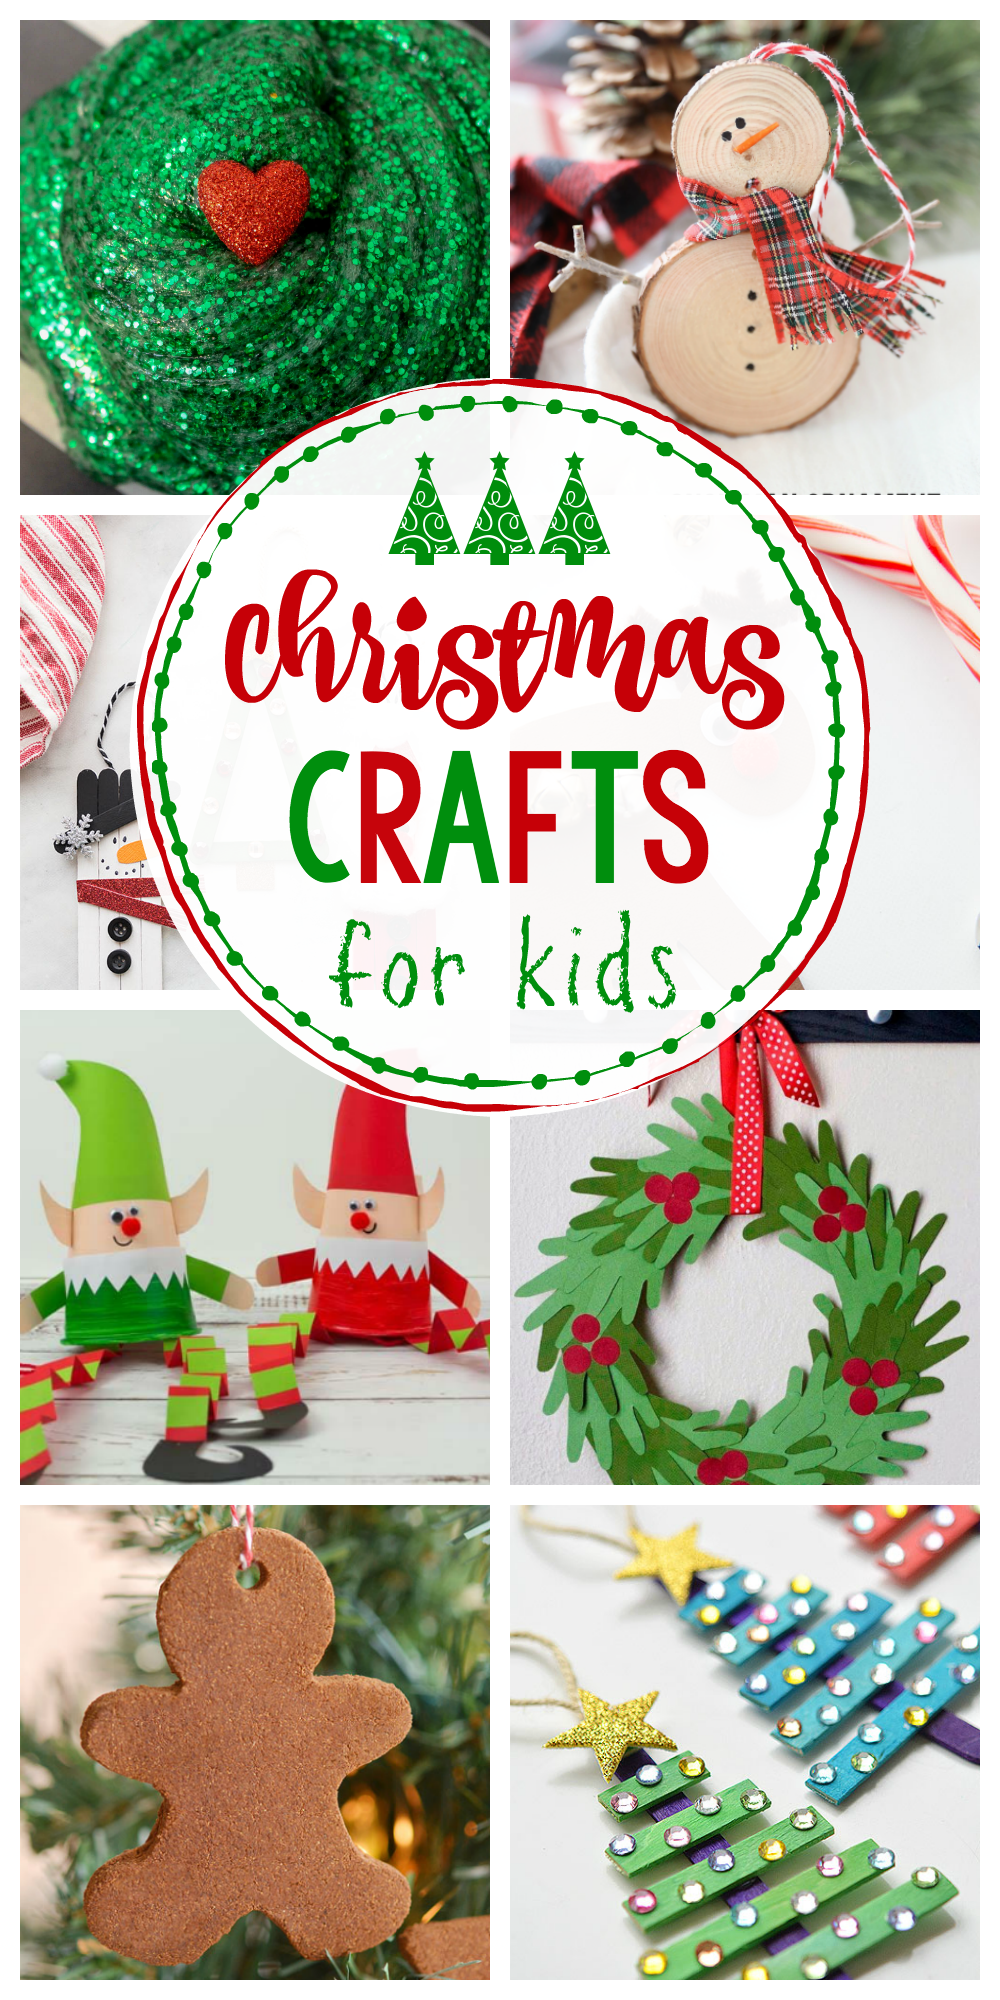 25 Easy Christmas Crafts for Kids-These ideas are great for kid's Christmas parties or just to try at home. The kids will love trying these Christmas craft ideas. #christmascrafts #crafts